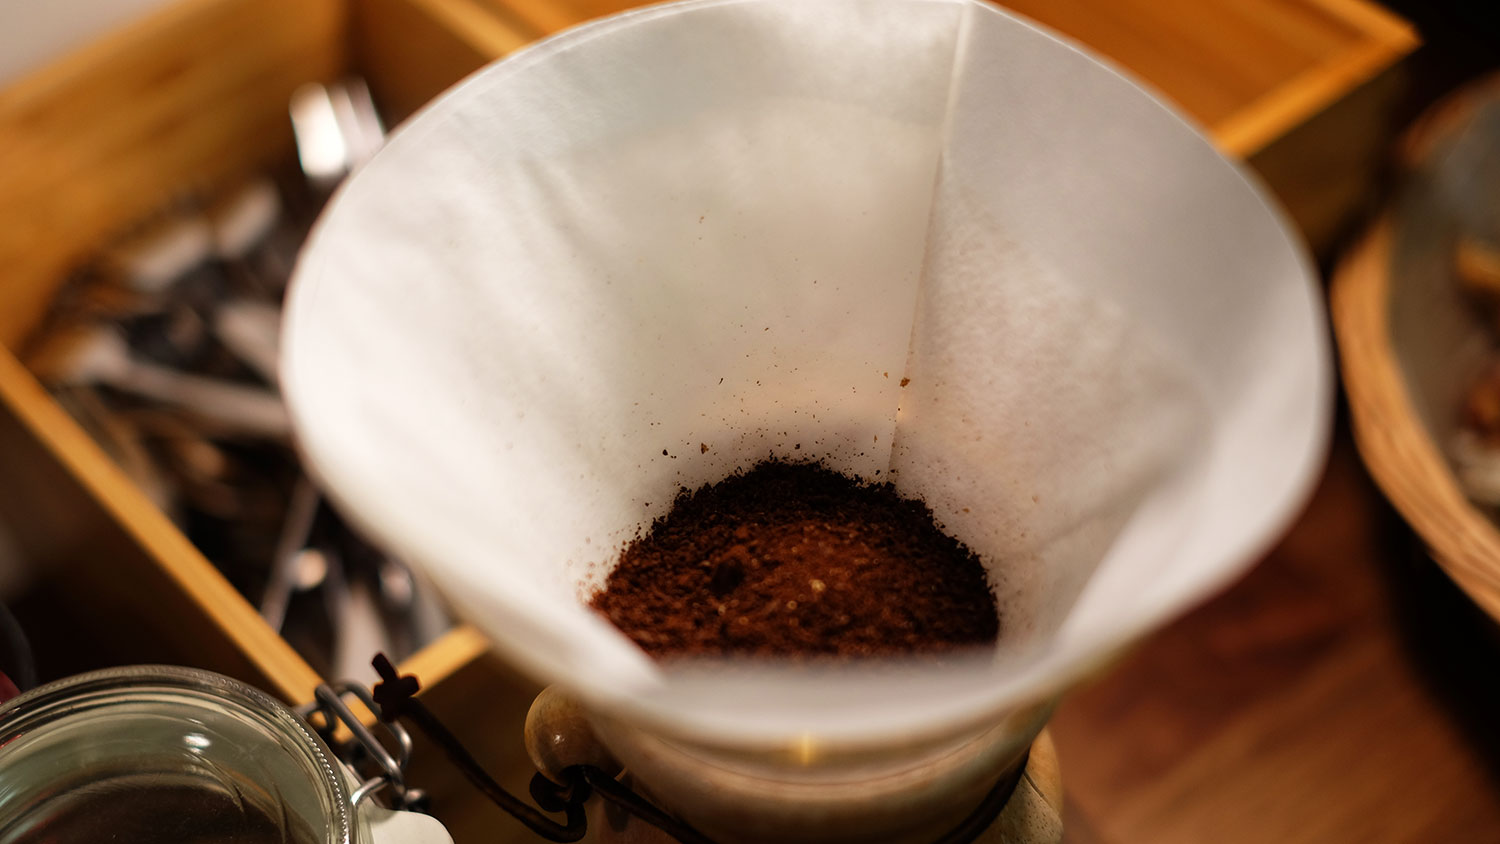 How One Woman Used Her Sons Notebook Paper To Invent Coffee Filters